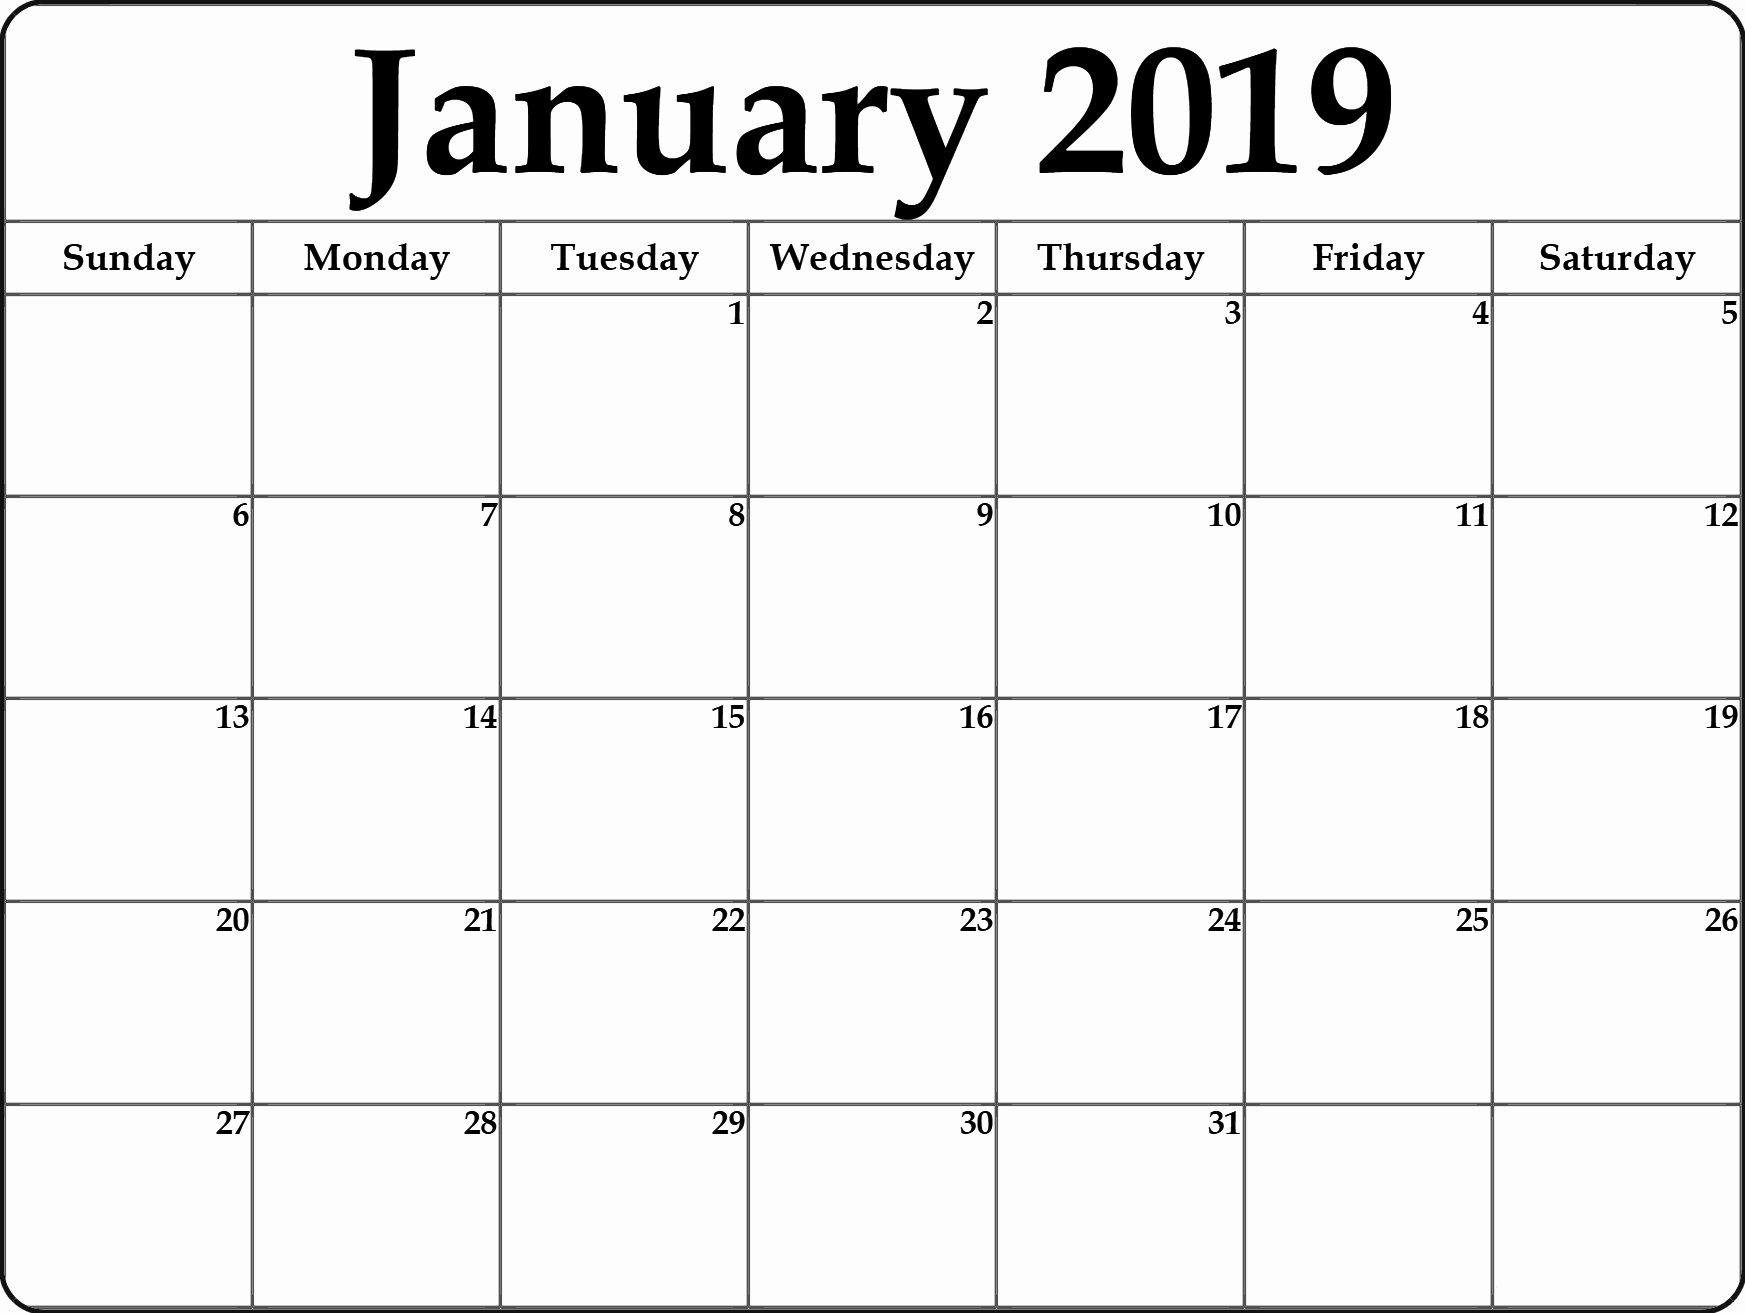 Blank January 2019 Calendar Template Elegant Calendar January 2019 In Pdf Word Excel Printable Template